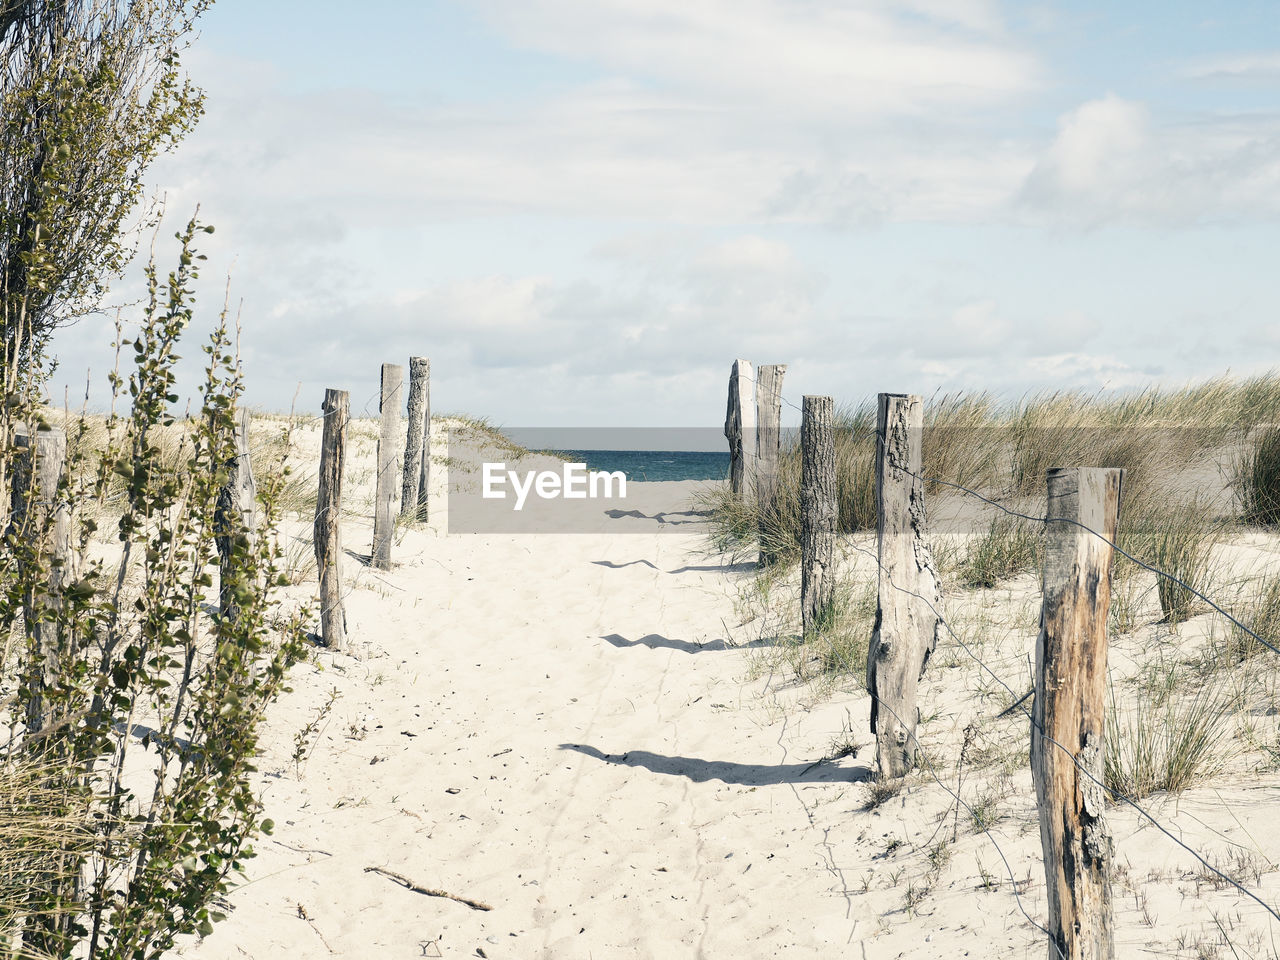 sky, tranquility, tranquil scene, cloud - sky, land, scenics - nature, nature, beauty in nature, beach, plant, sea, sand, horizon, day, water, wood - material, non-urban scene, landscape, post, wooden post, no people, horizon over water, outdoors